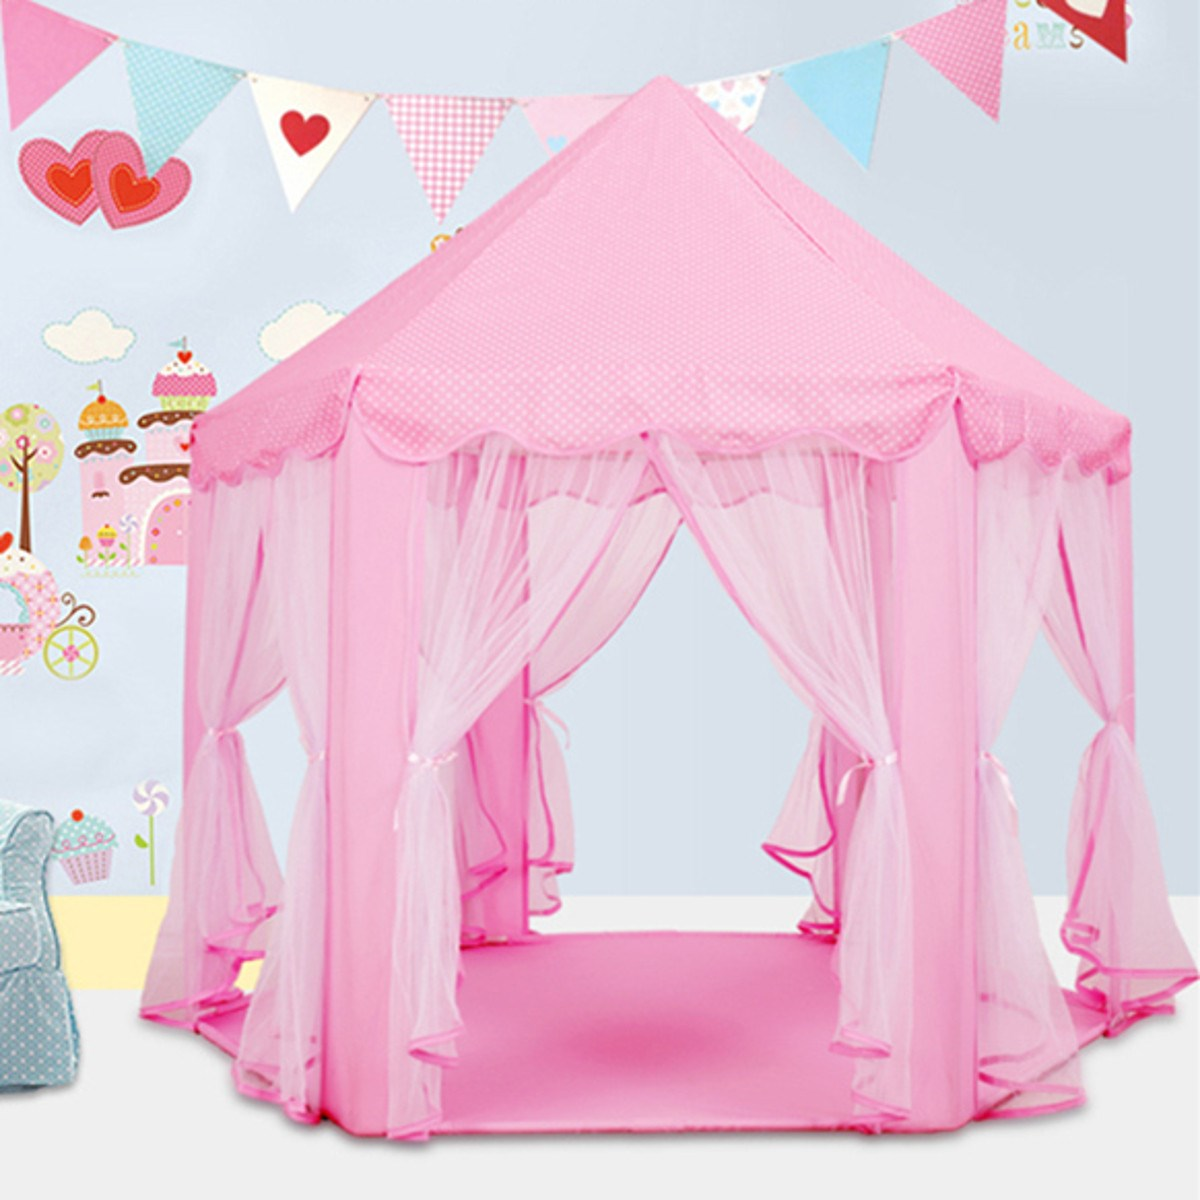 Lovely Girls Pink Princess Castle Cute Playhouse Children Kids Play Tent Outdoor Toys Tent For Children Kids-in Toy Tents from Toys u0026 Hobbies on ...  sc 1 st  AliExpress.com & Lovely Girls Pink Princess Castle Cute Playhouse Children Kids ...